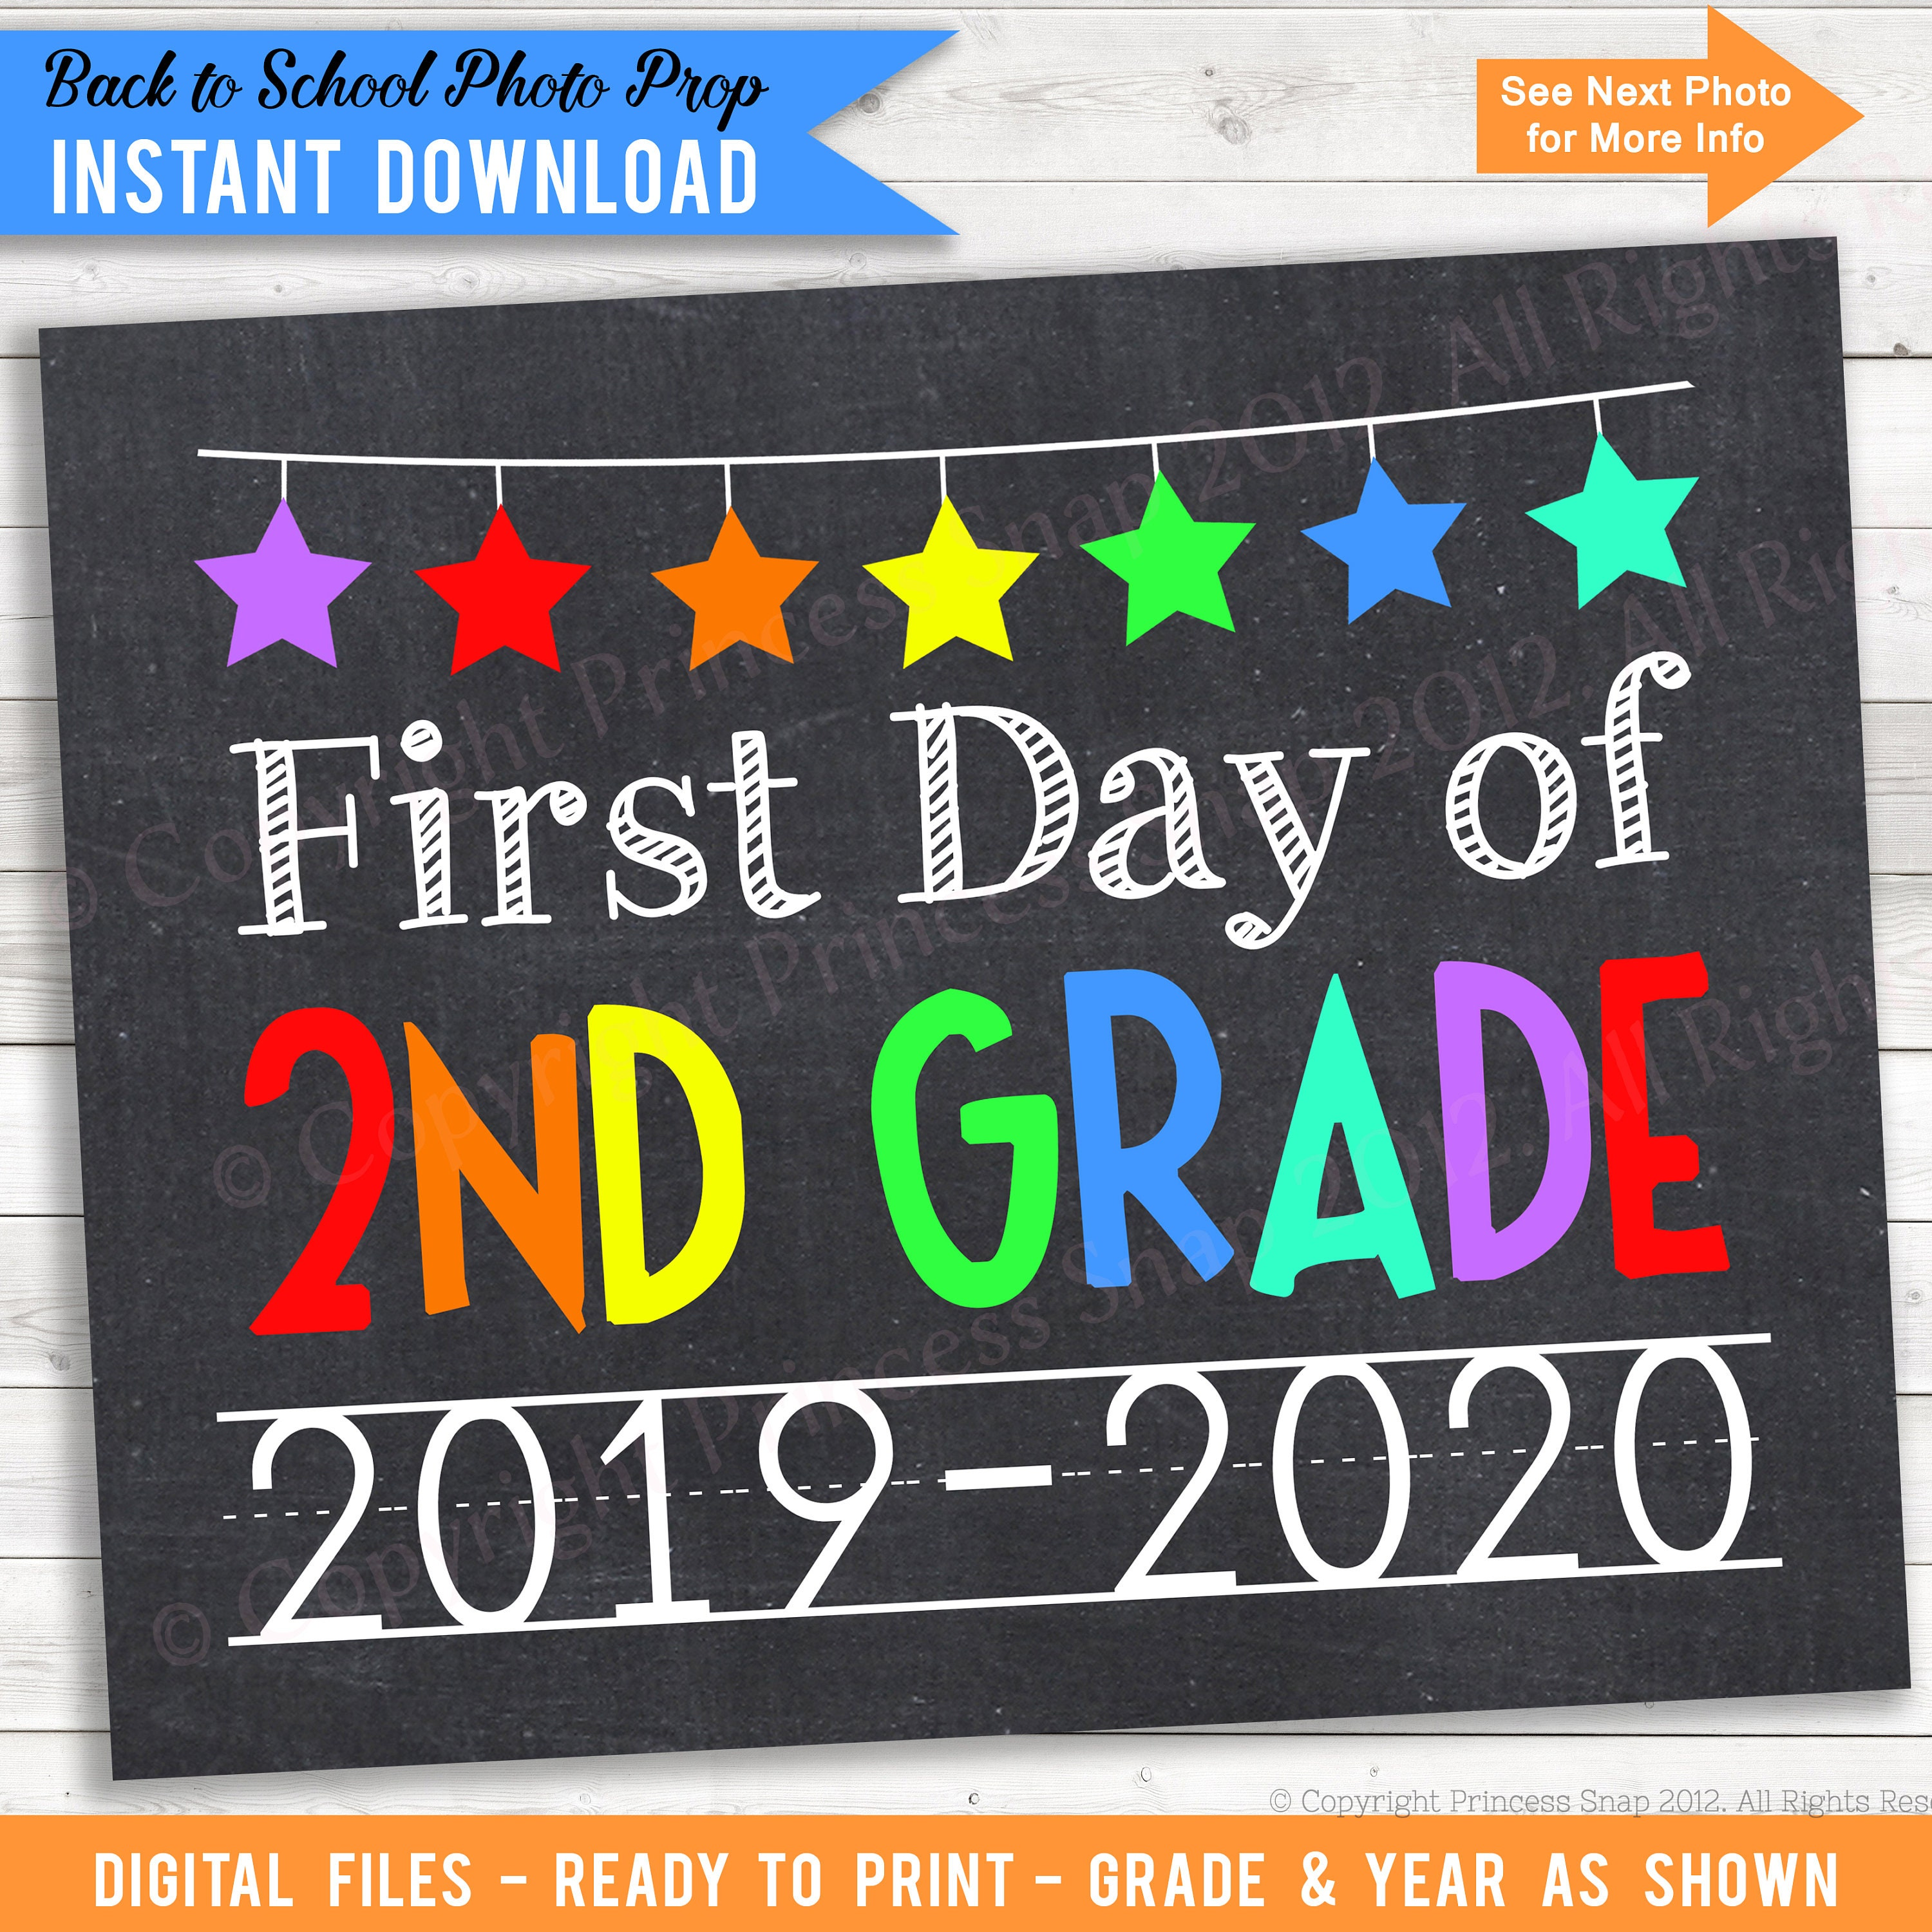 picture about First Day of Second Grade Printable Sign identified as Very first Working day of 2nd Quality, 2019-2020, Higher education Picture Prop, Rainbow Moment Quality, 1st Working day College or university, 1st Working day 2nd, Printable Indication, 8\